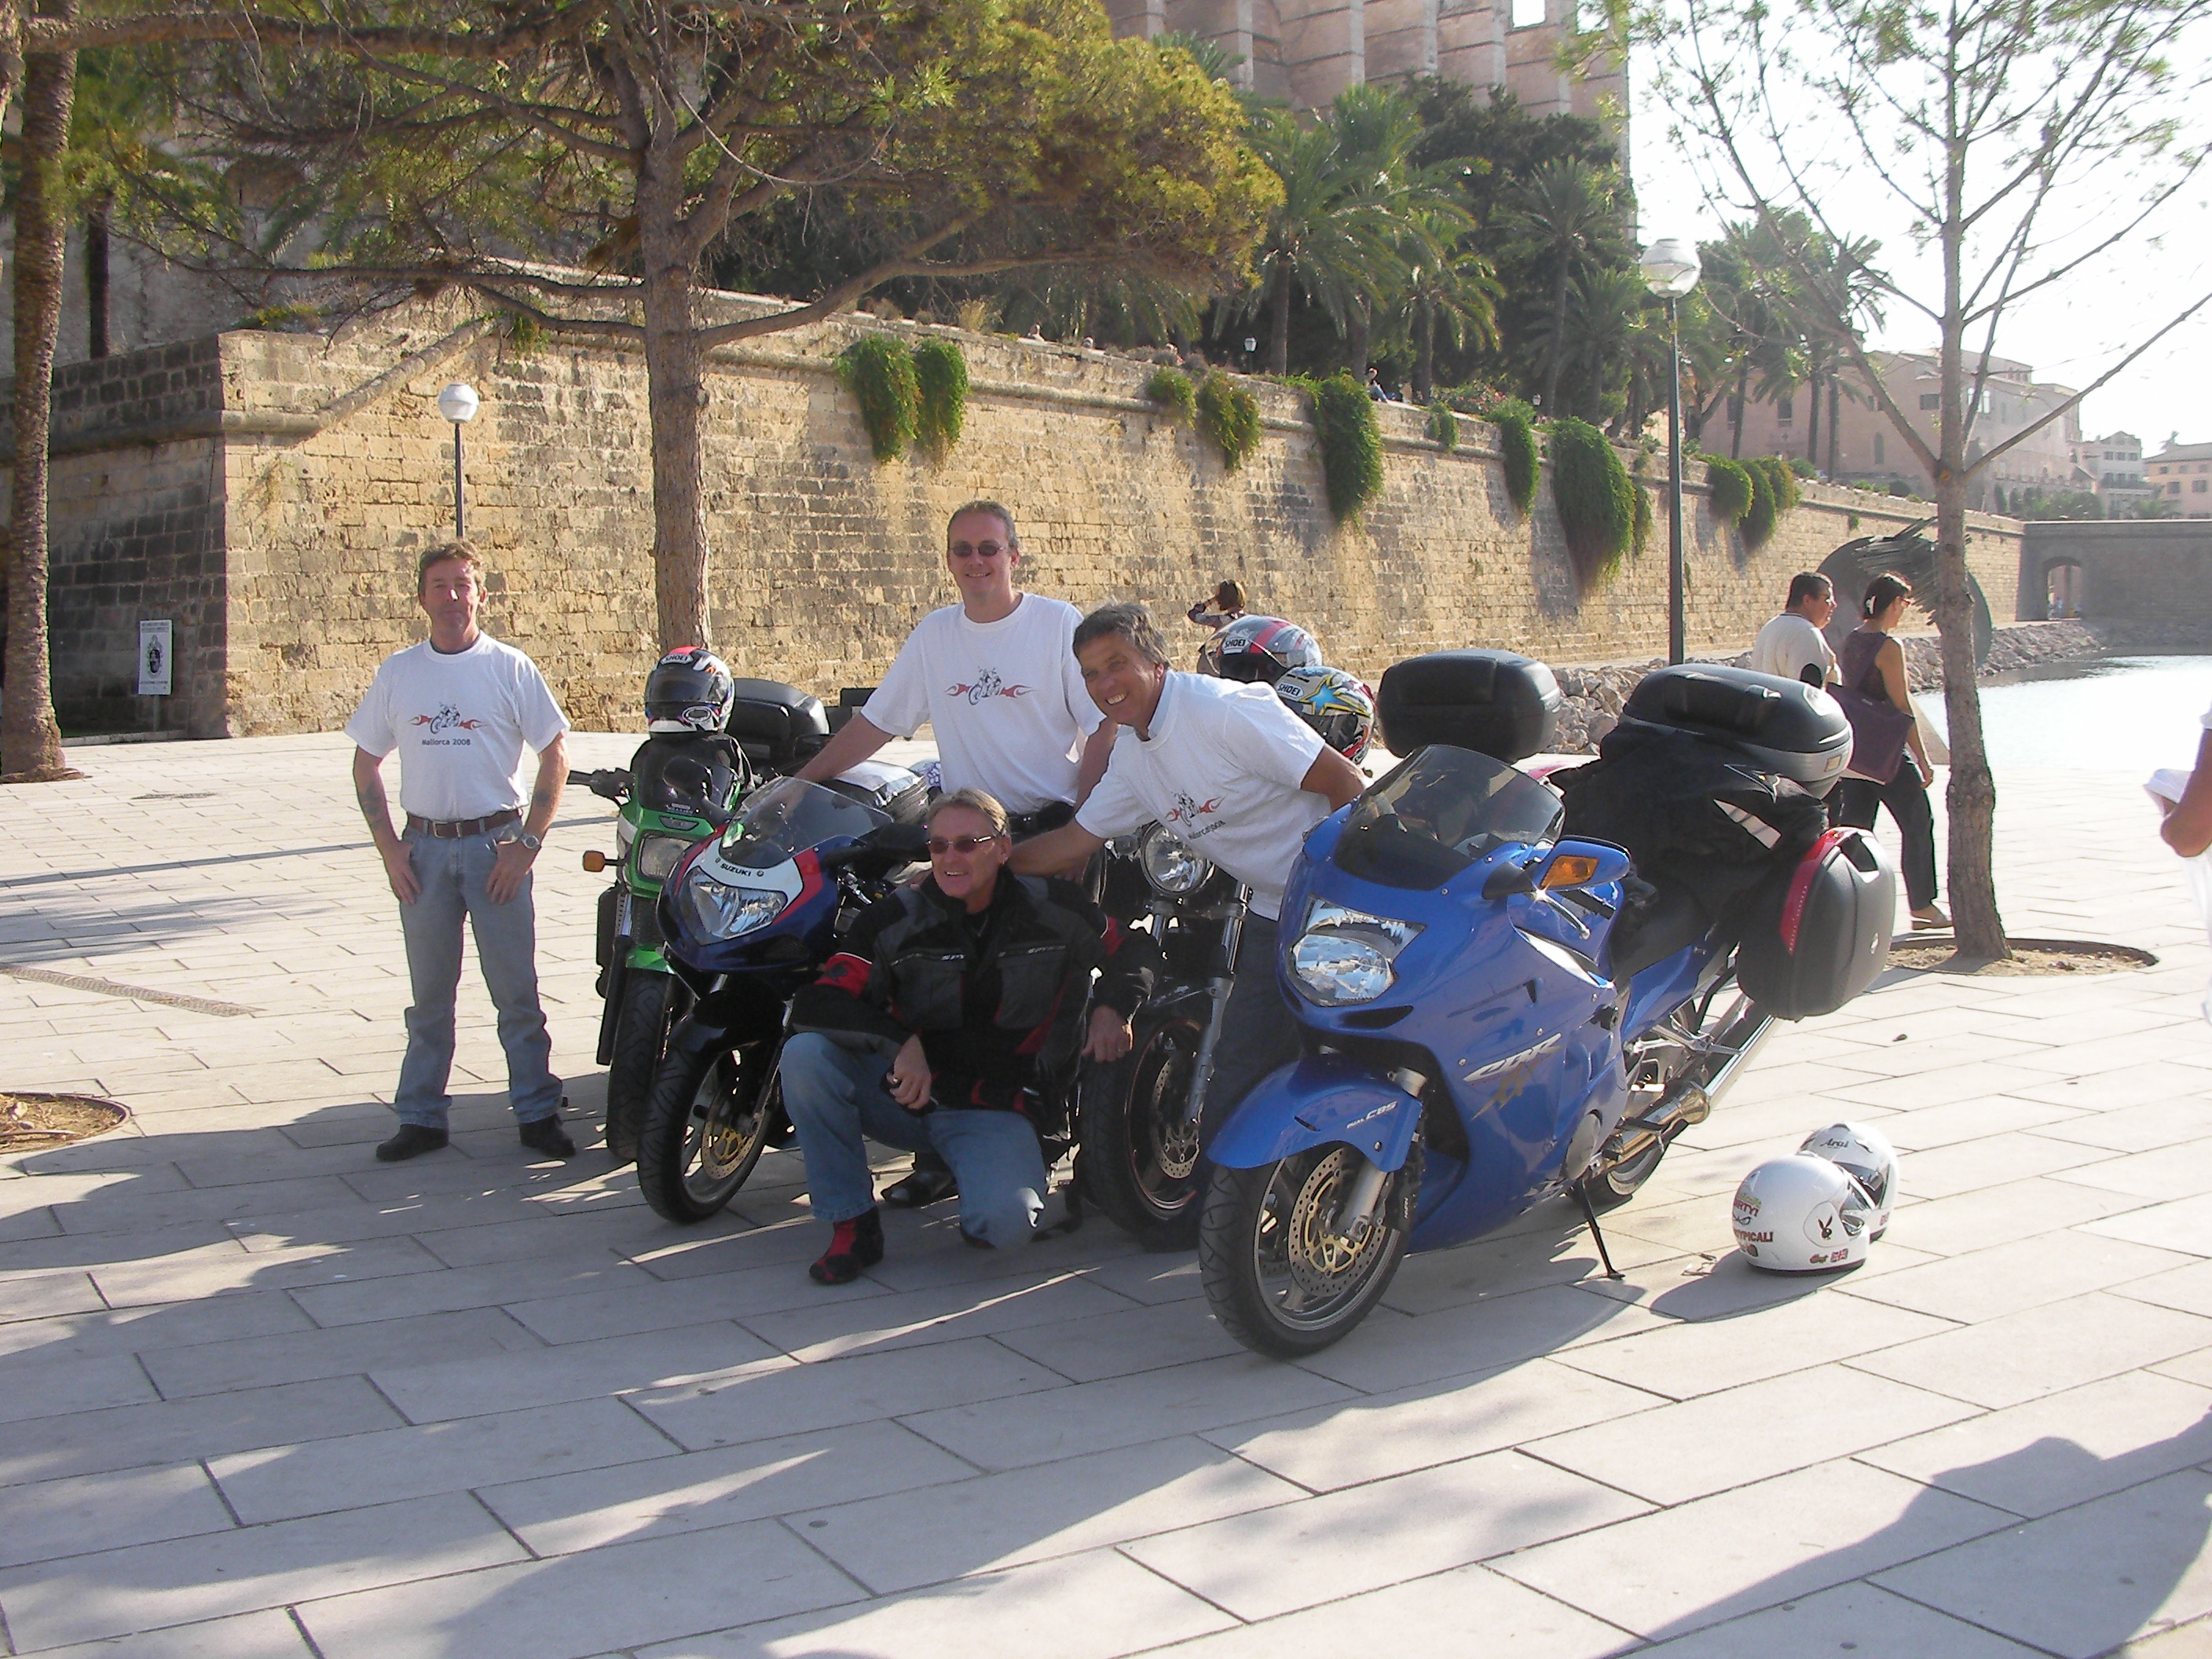 Motorcycles outside the cathederal in Palma Mallorca.